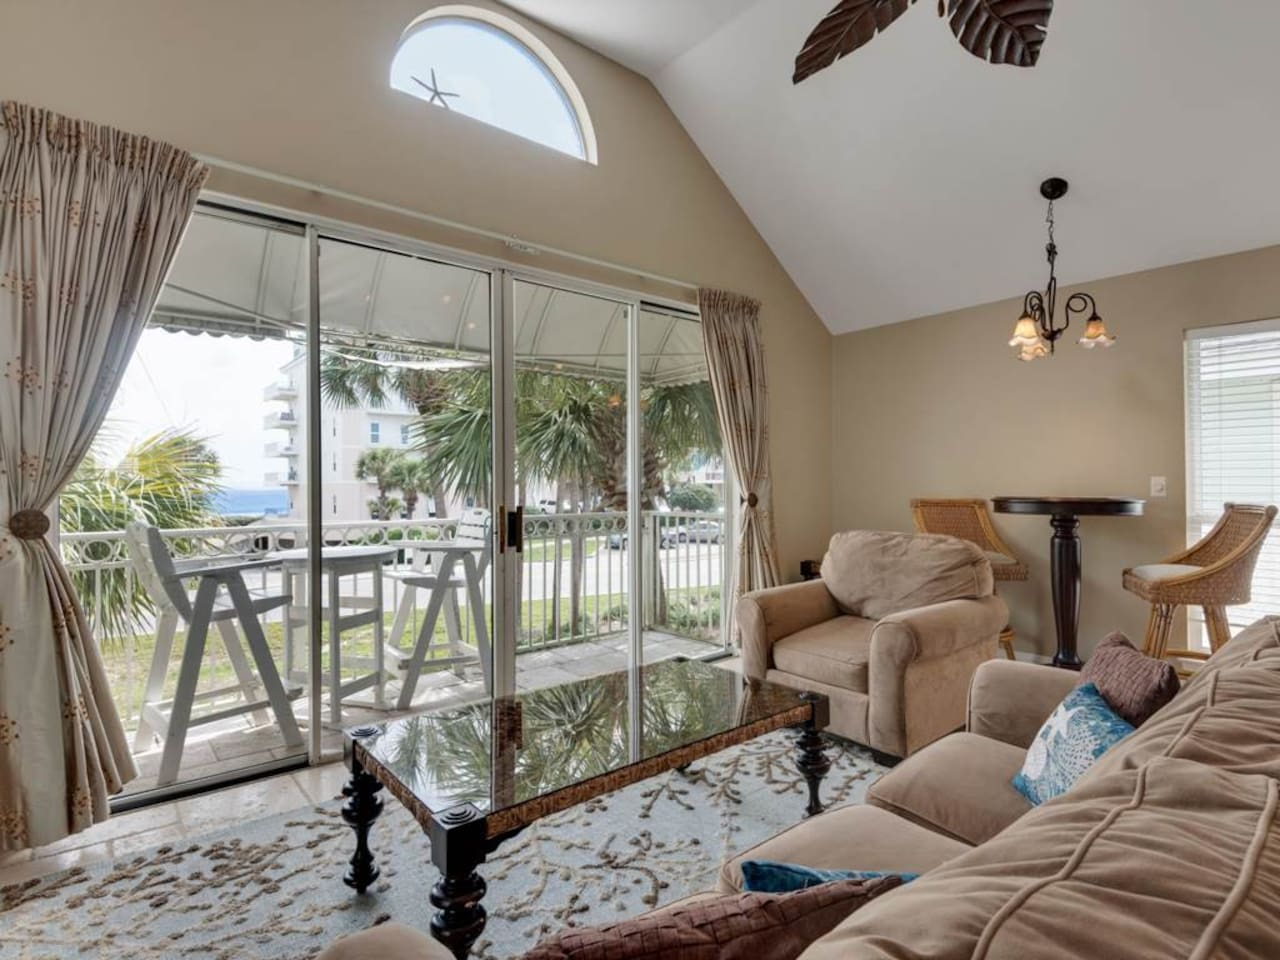 close fl more ground and nantucket to image beach destin cottages floor ha property rainbow bedroom